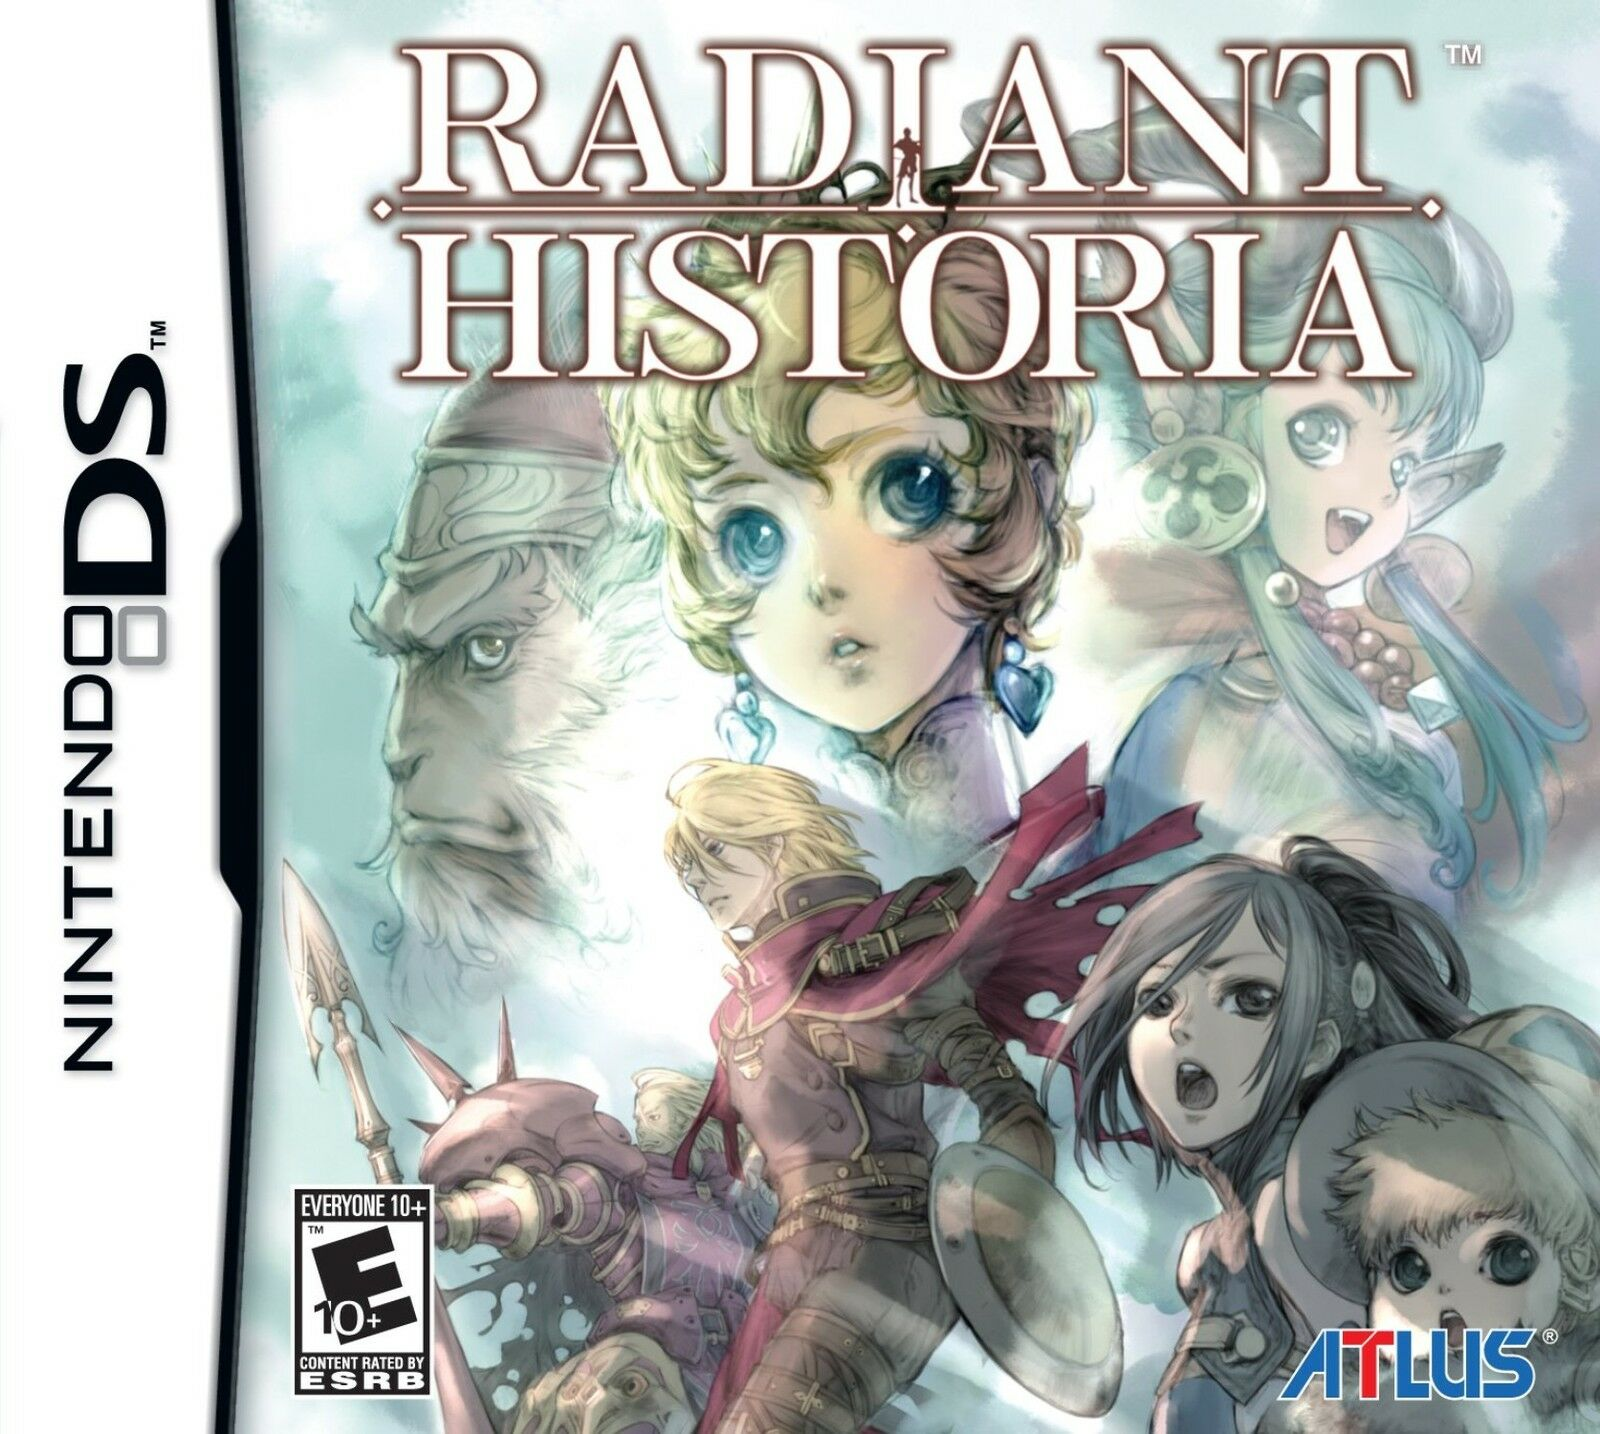 $22.13 - Radiant Historia Nintendo DS Game Brand New and Sealed